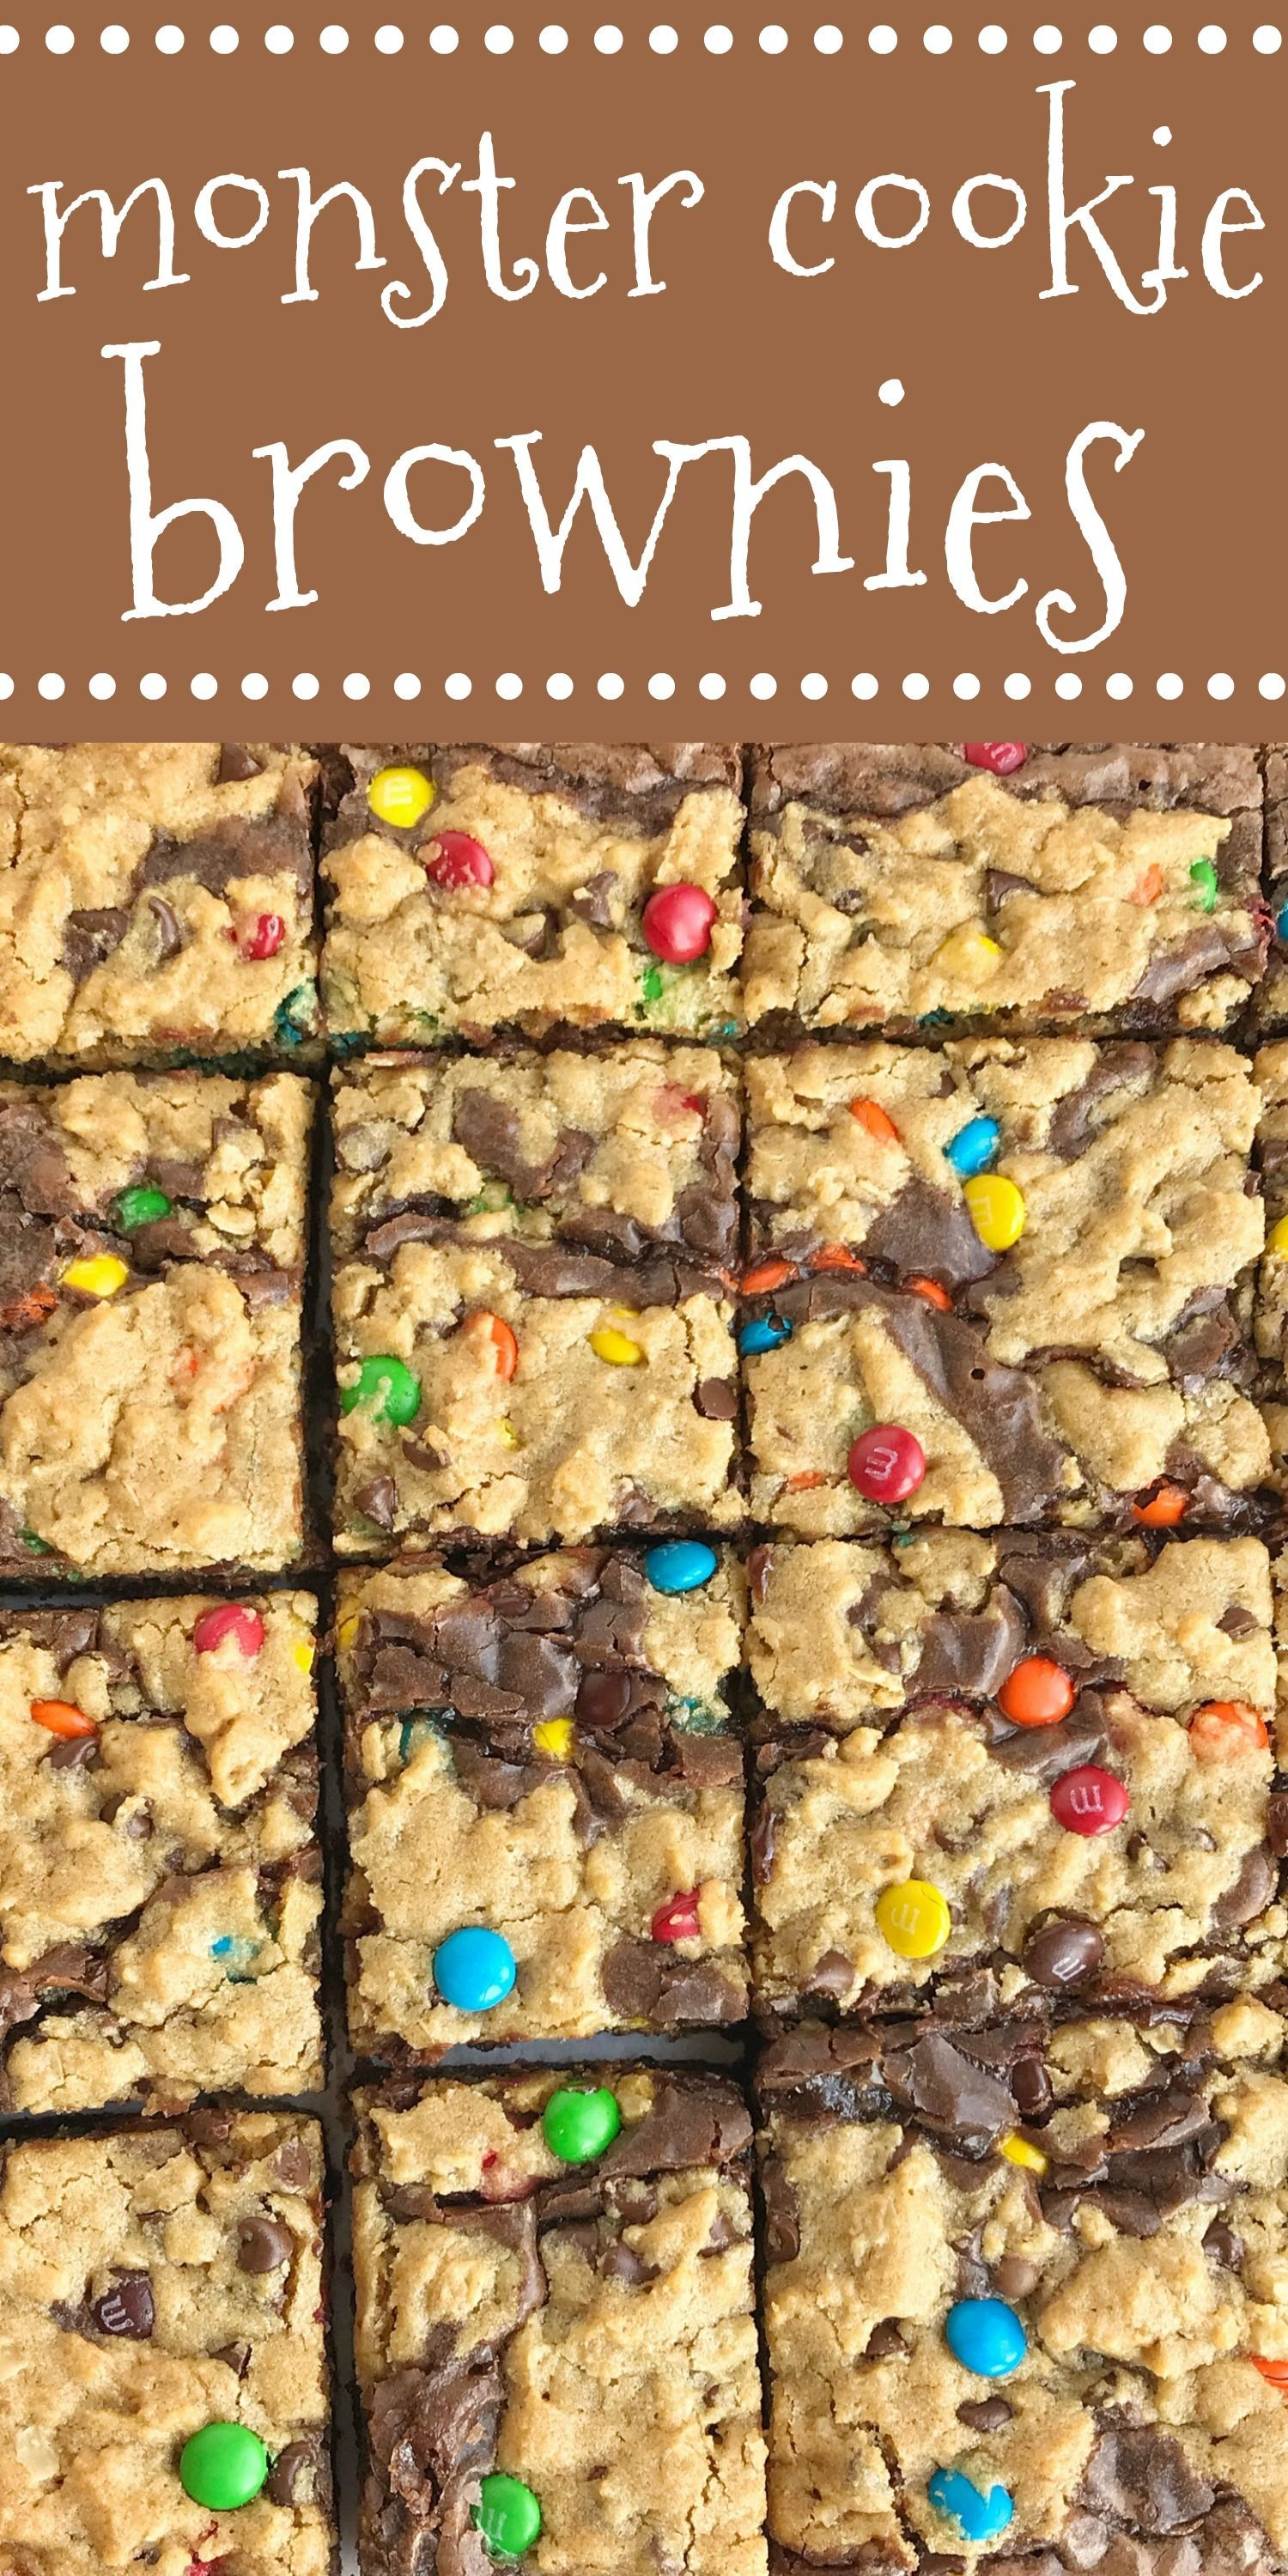 Monster Cookie Brownies | Monster cookie brownies start with a boxed brownie mix...   - //food